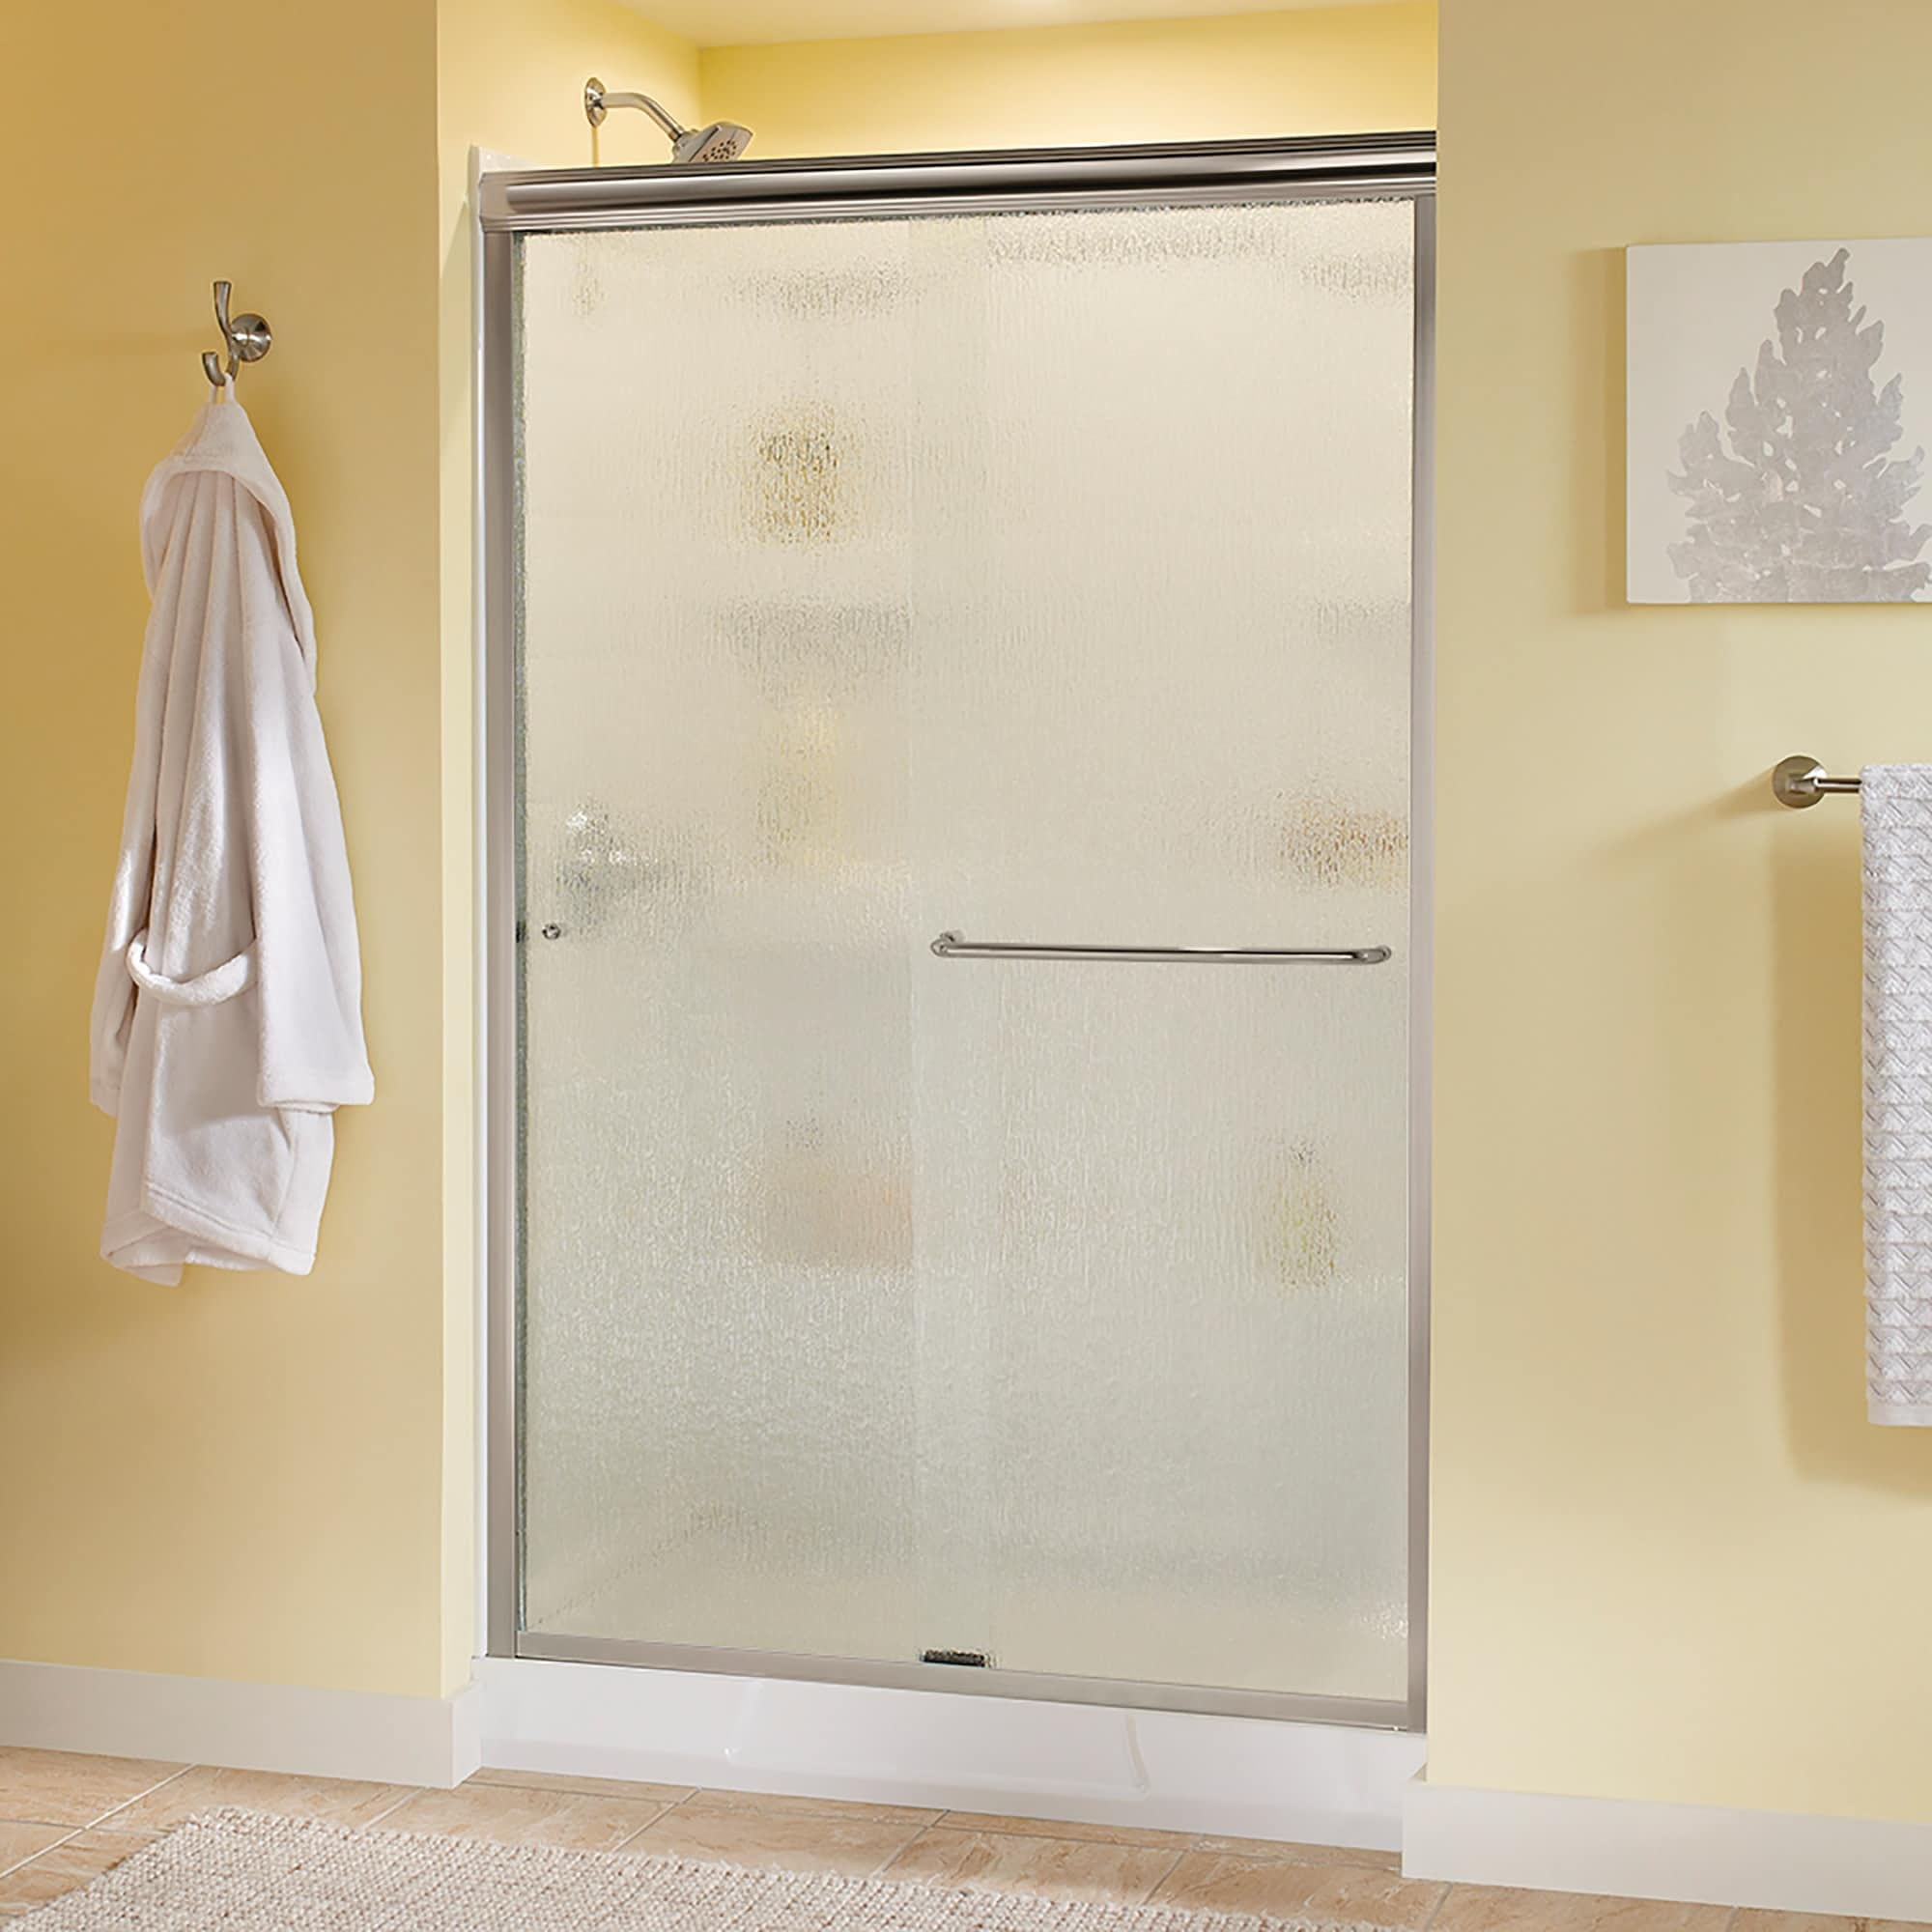 Delta Sd3956972 Classic 70 High X 47 3 8 Wide Sliding Semi Frameless Shower Door With Frosted Glass Nickel